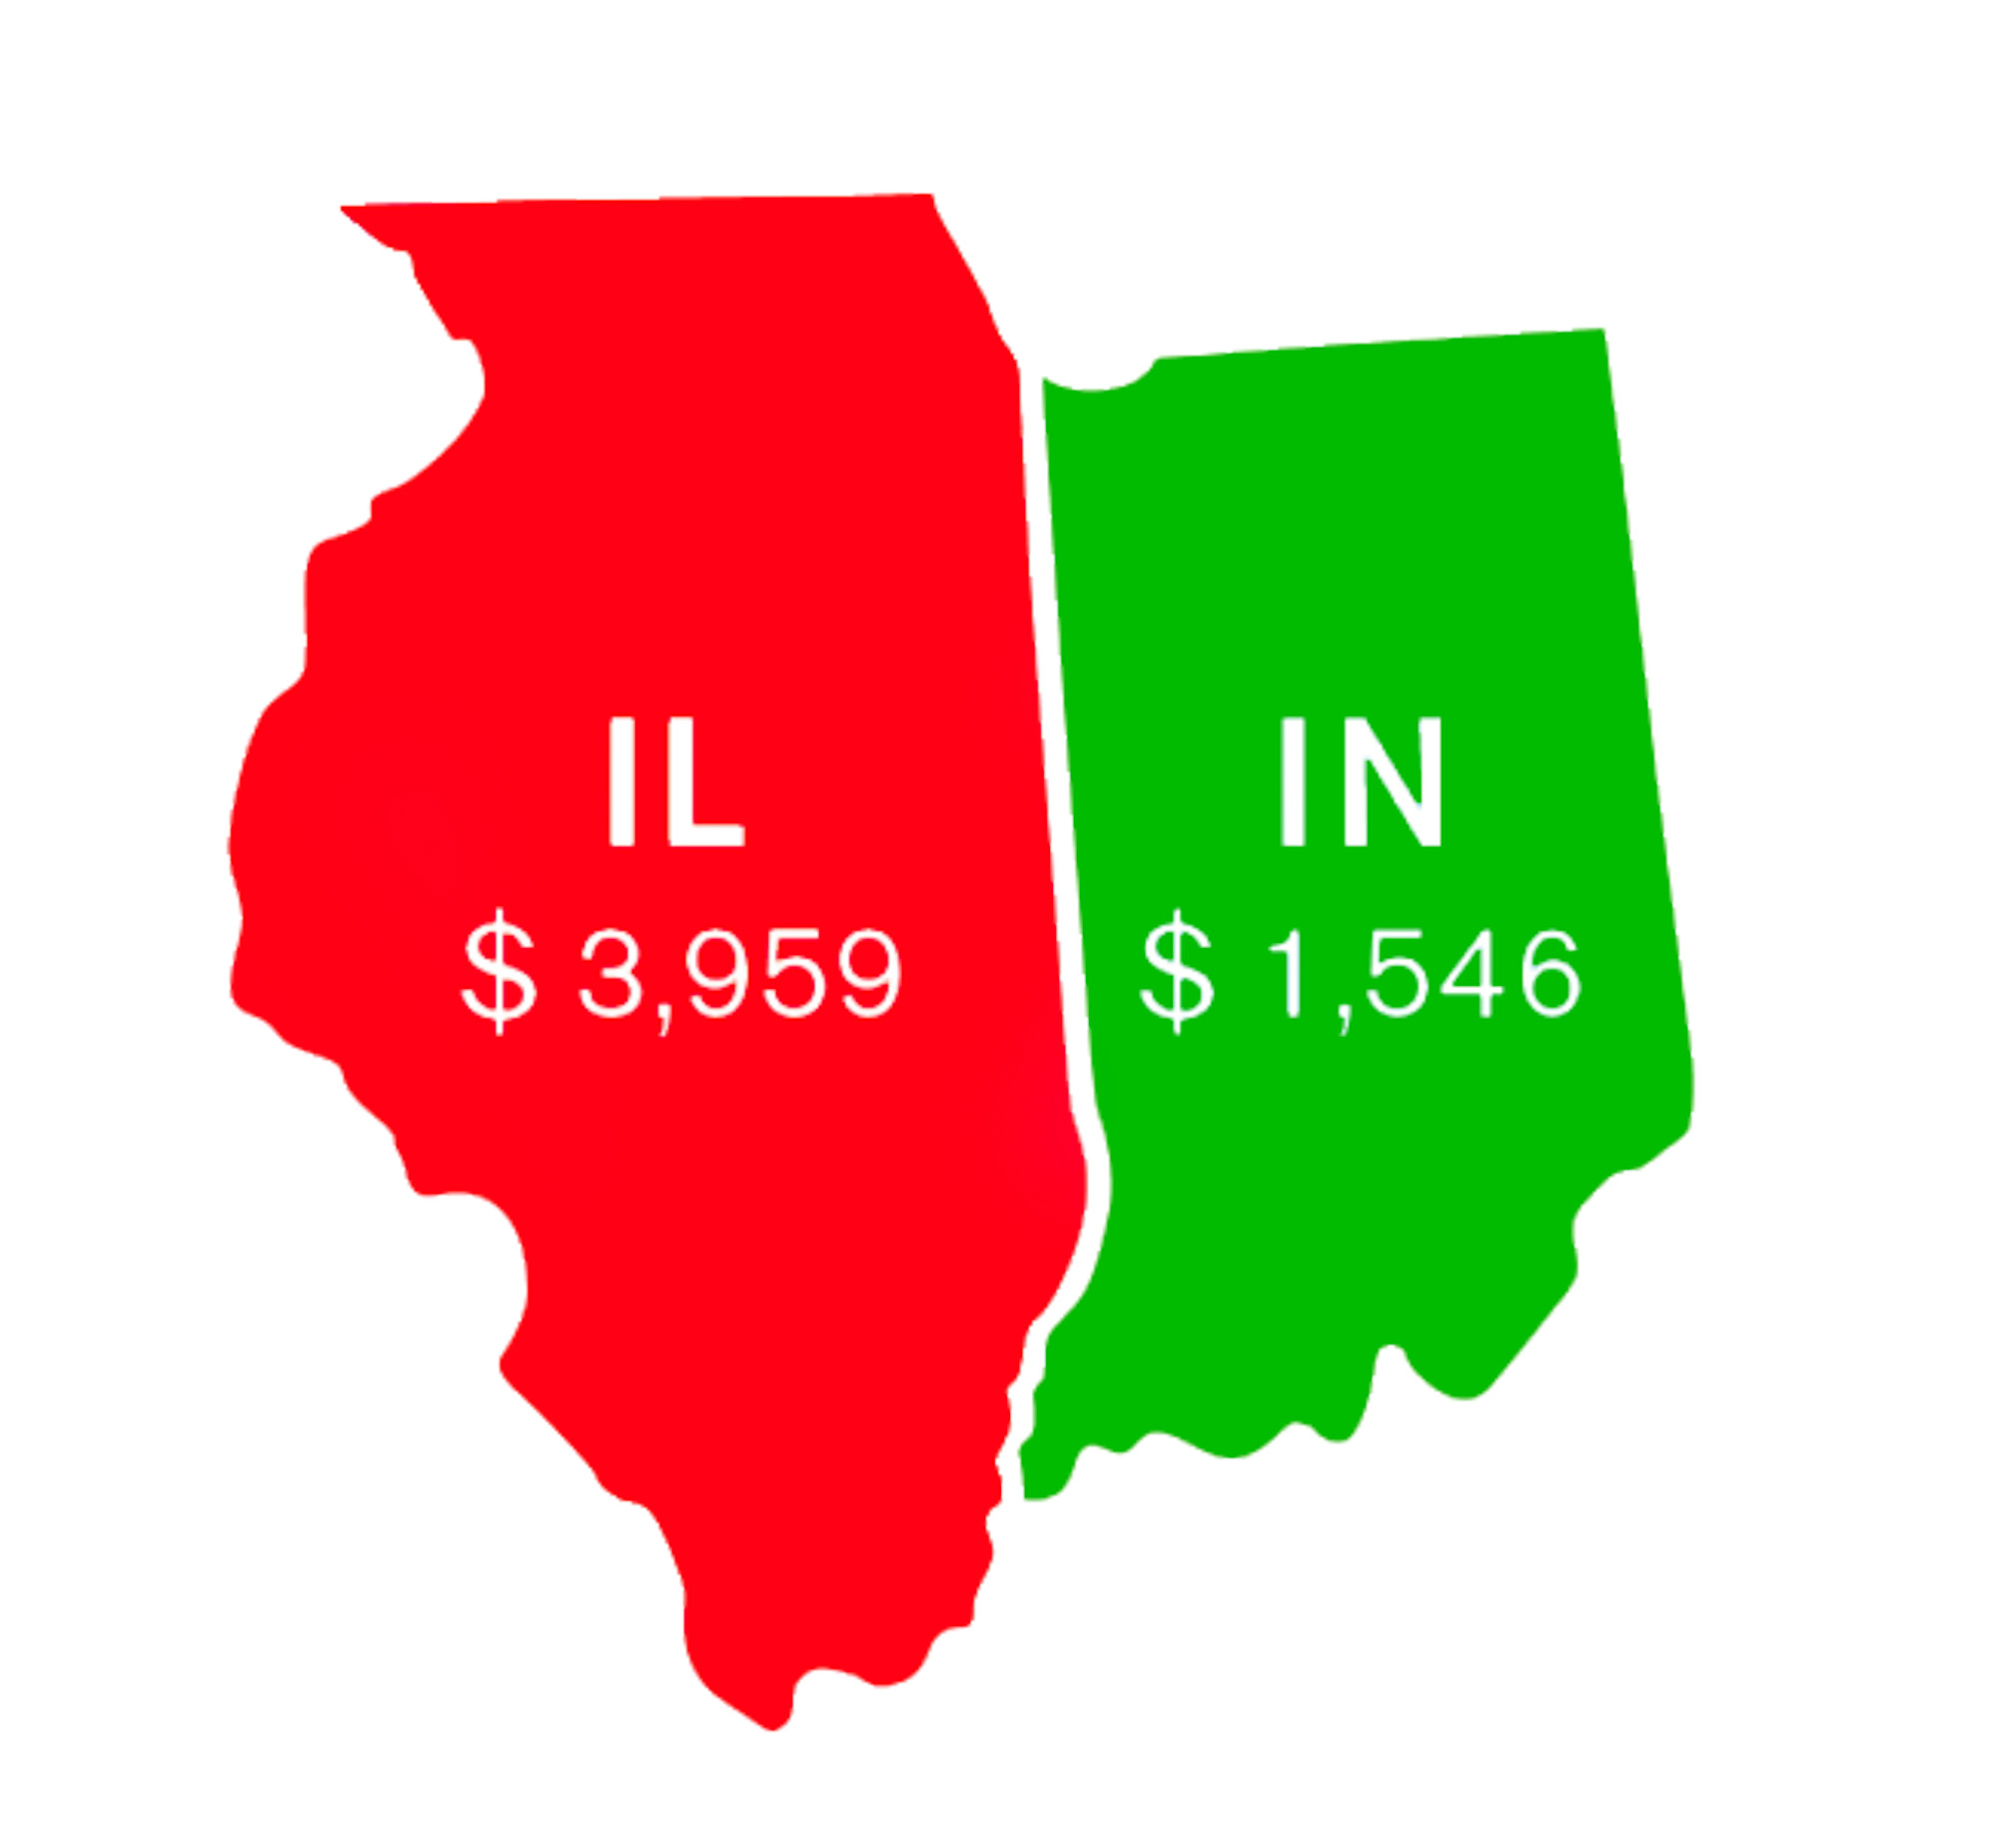 IL.IN Tax comparison